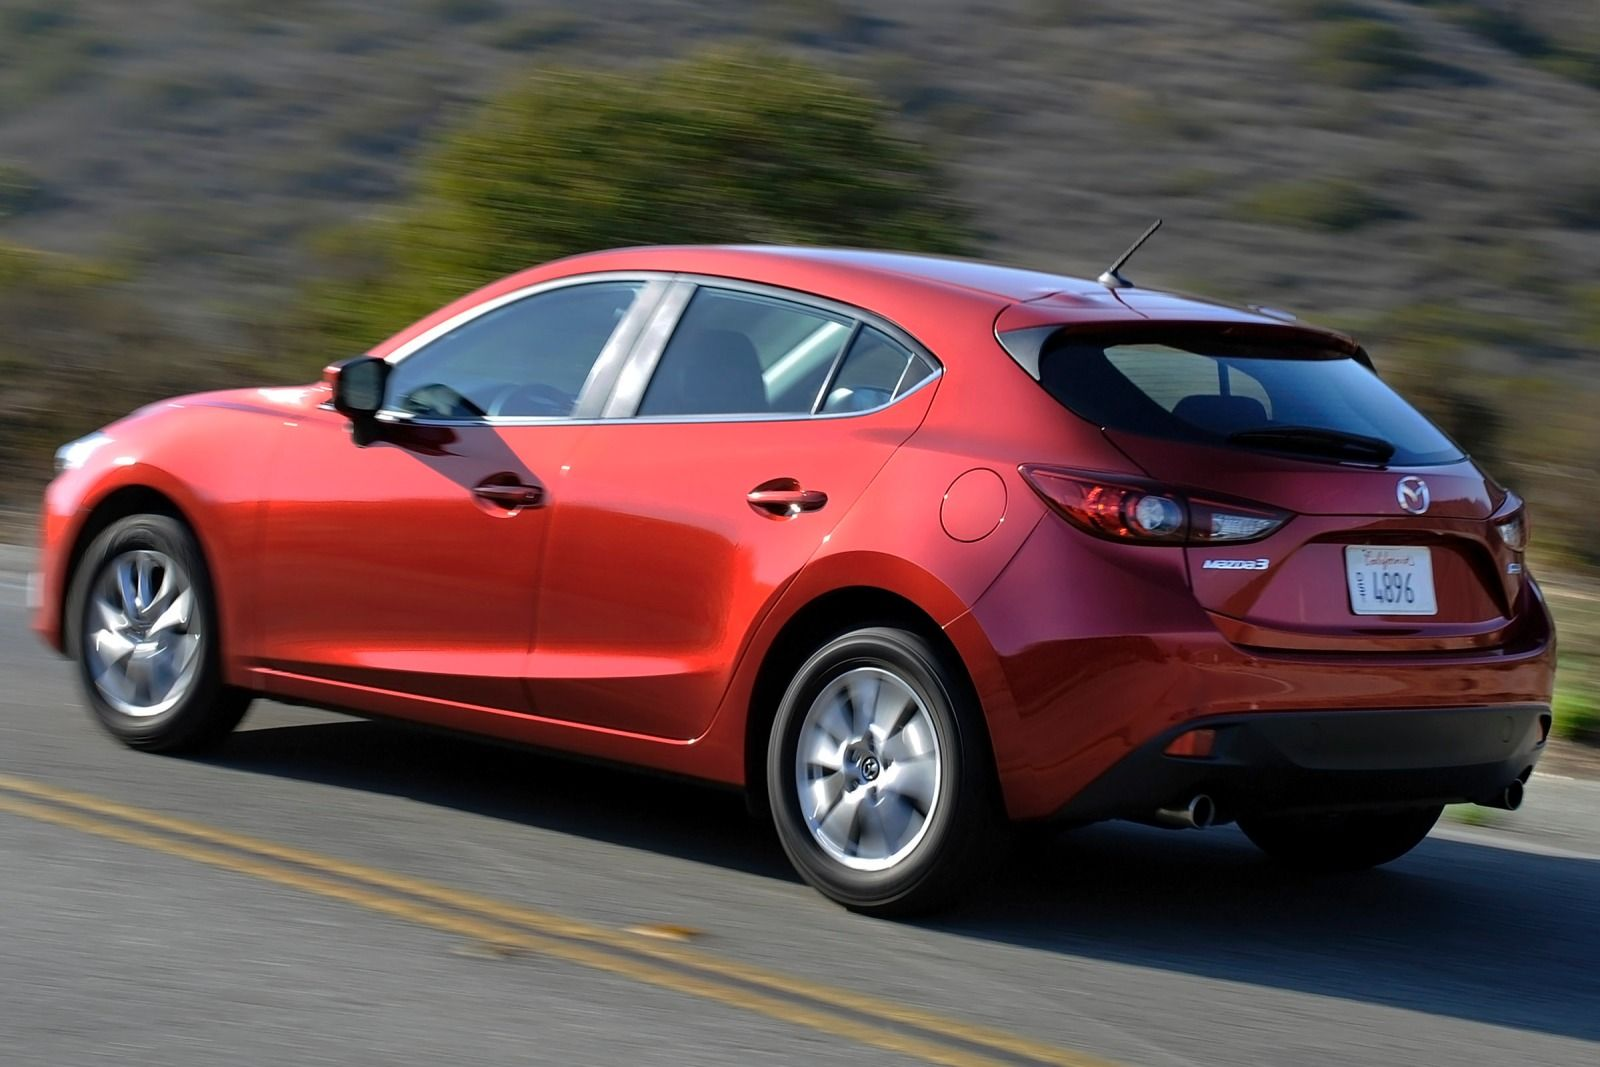 2015 mazda mazda 6 hatchback pictures information and specs auto. Black Bedroom Furniture Sets. Home Design Ideas